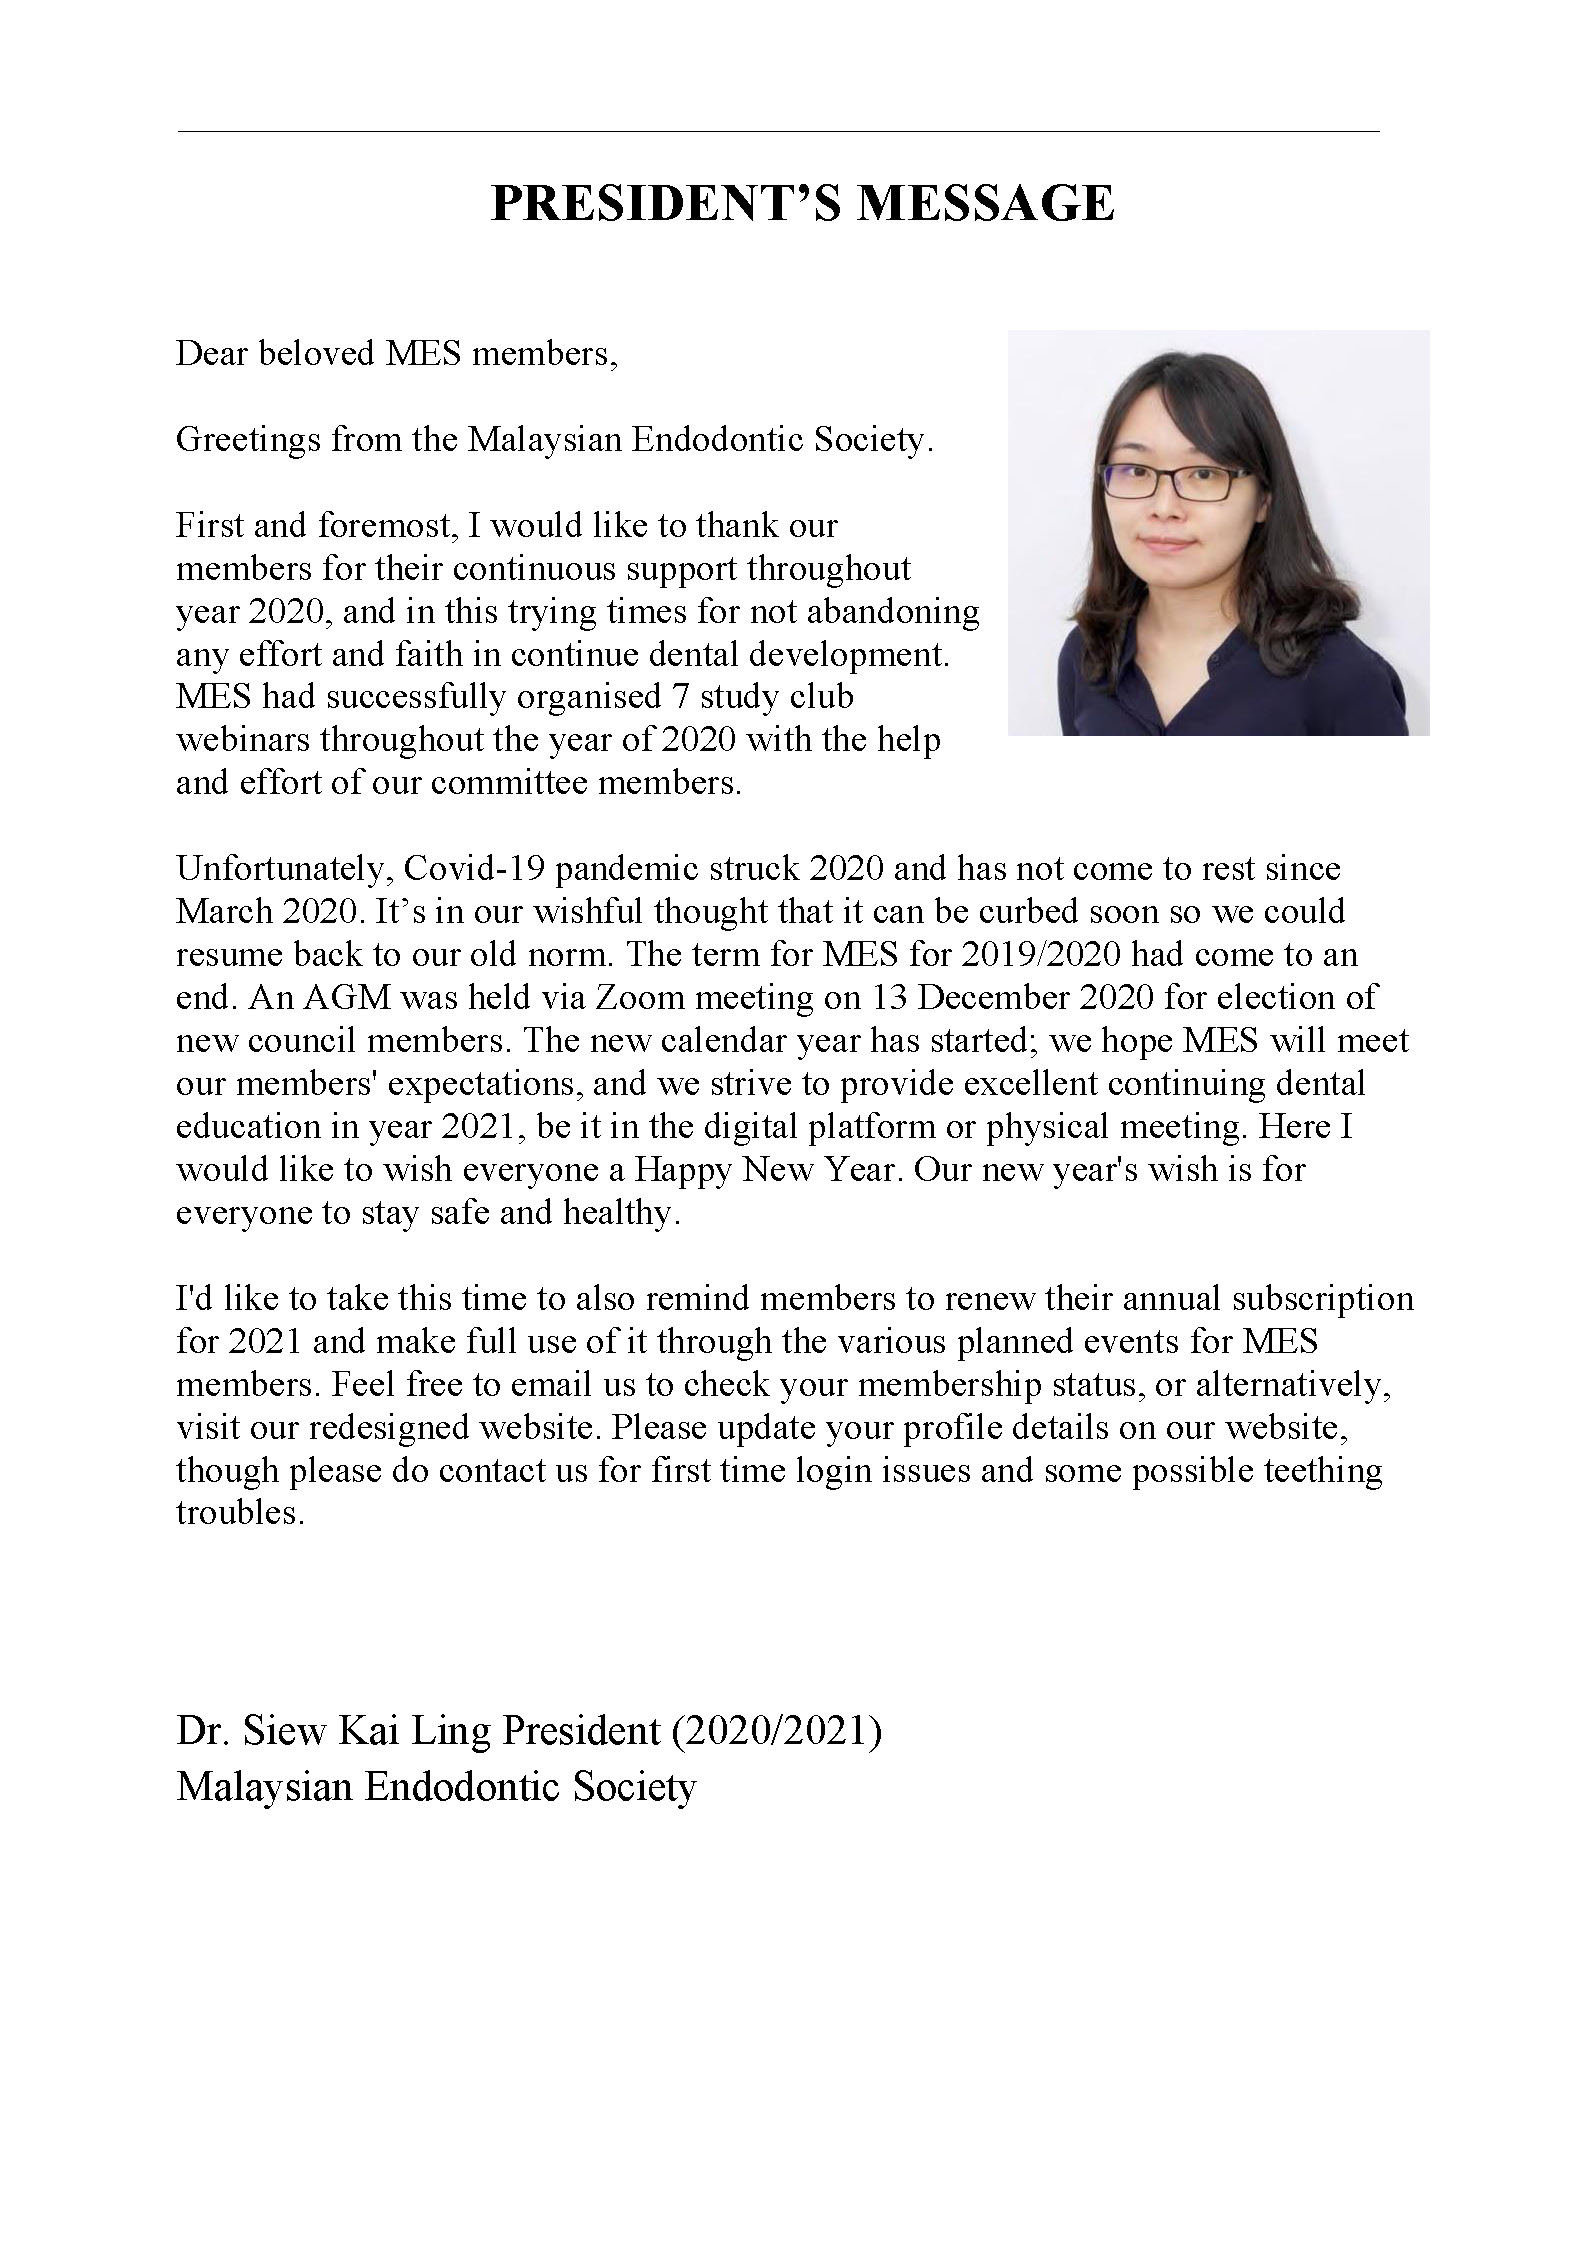 MES President's New Year Message